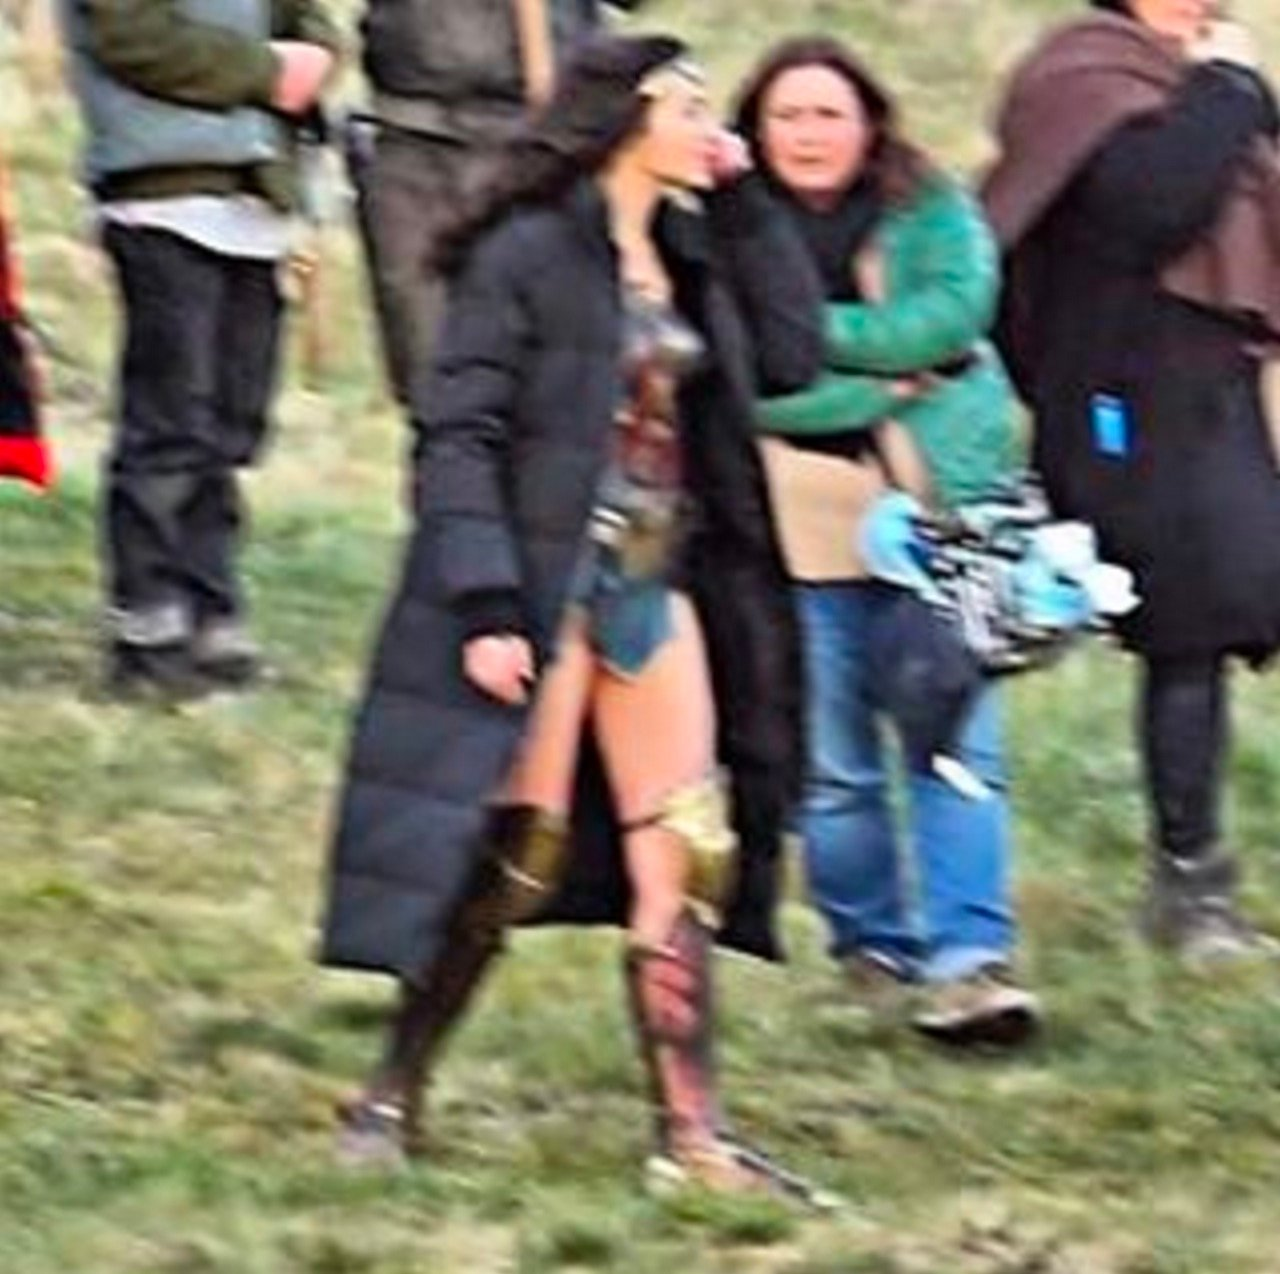 New Wonder Woman Set Photos Show Gal Gadot Suited Up